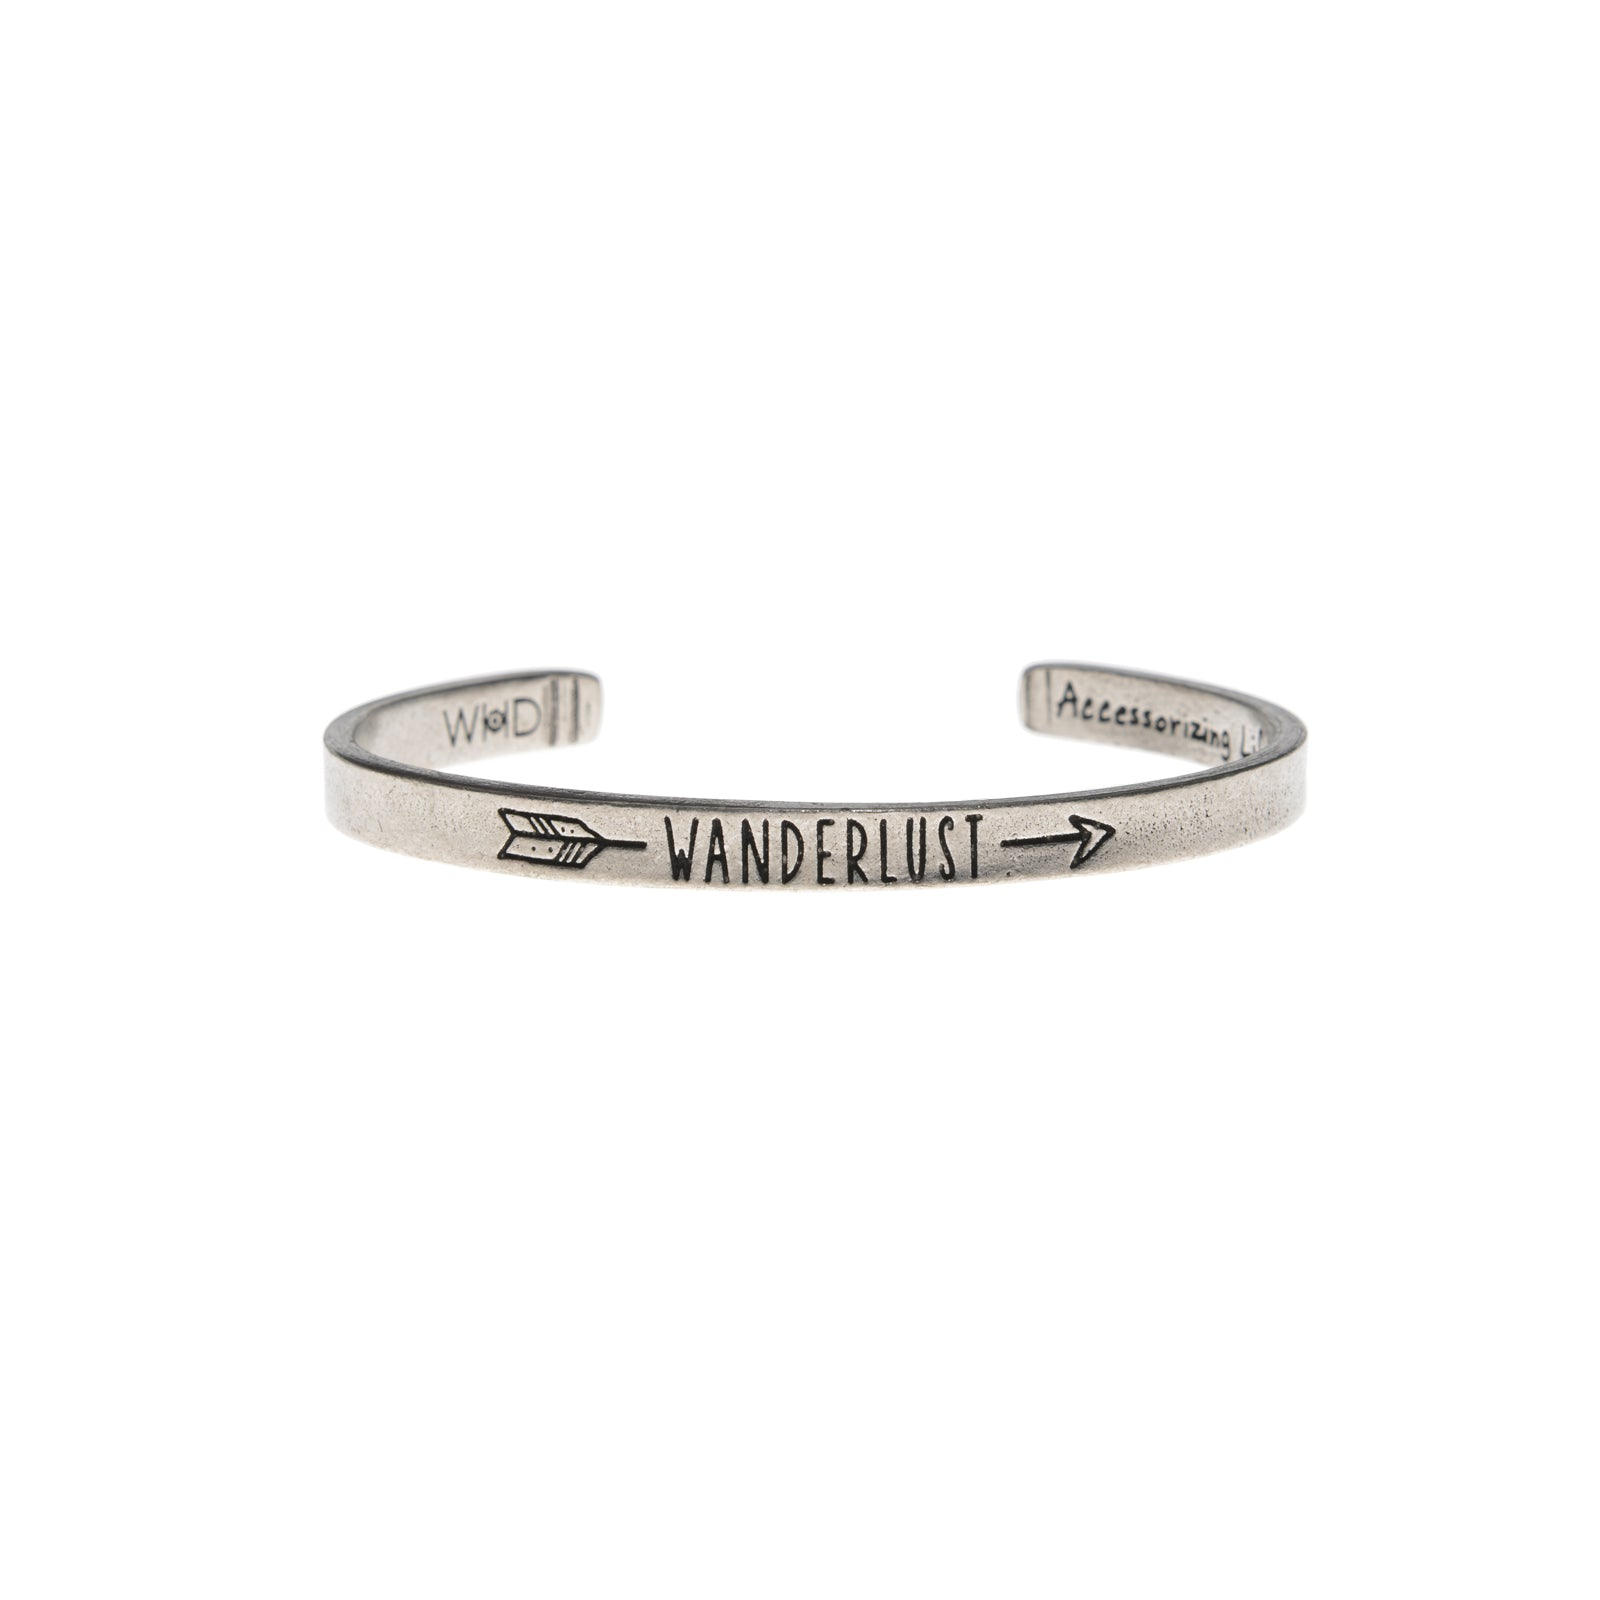 Wanderlust Quotable Cuff - Whitney Howard Designs